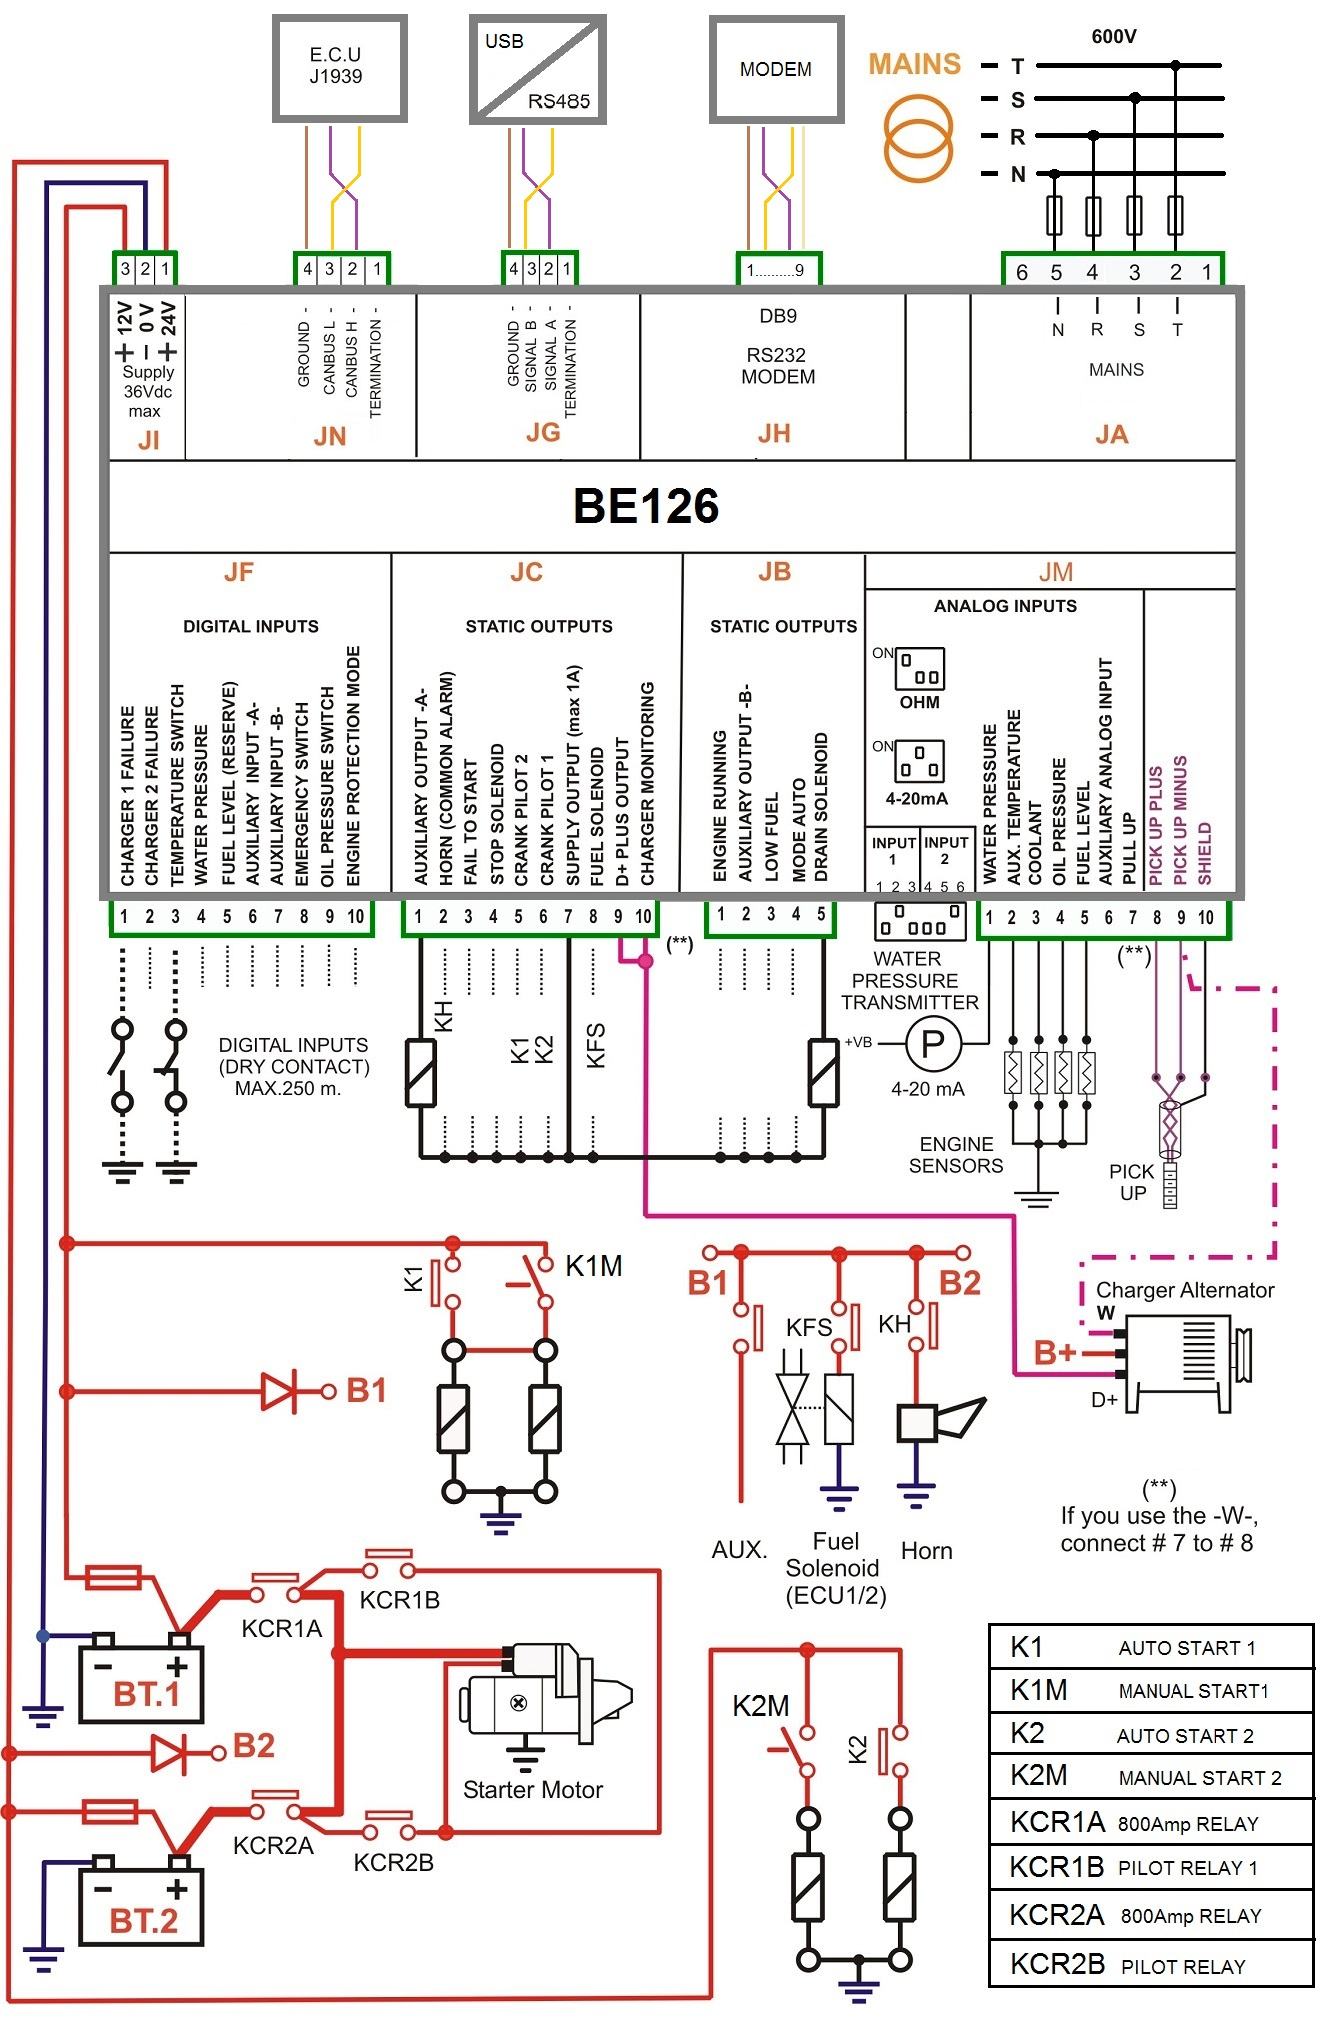 NFPA20 fire pump controller wiring diagram fire alarm panel wiring diagram conventional fire alarm panel rj48x wiring diagram at readyjetset.co